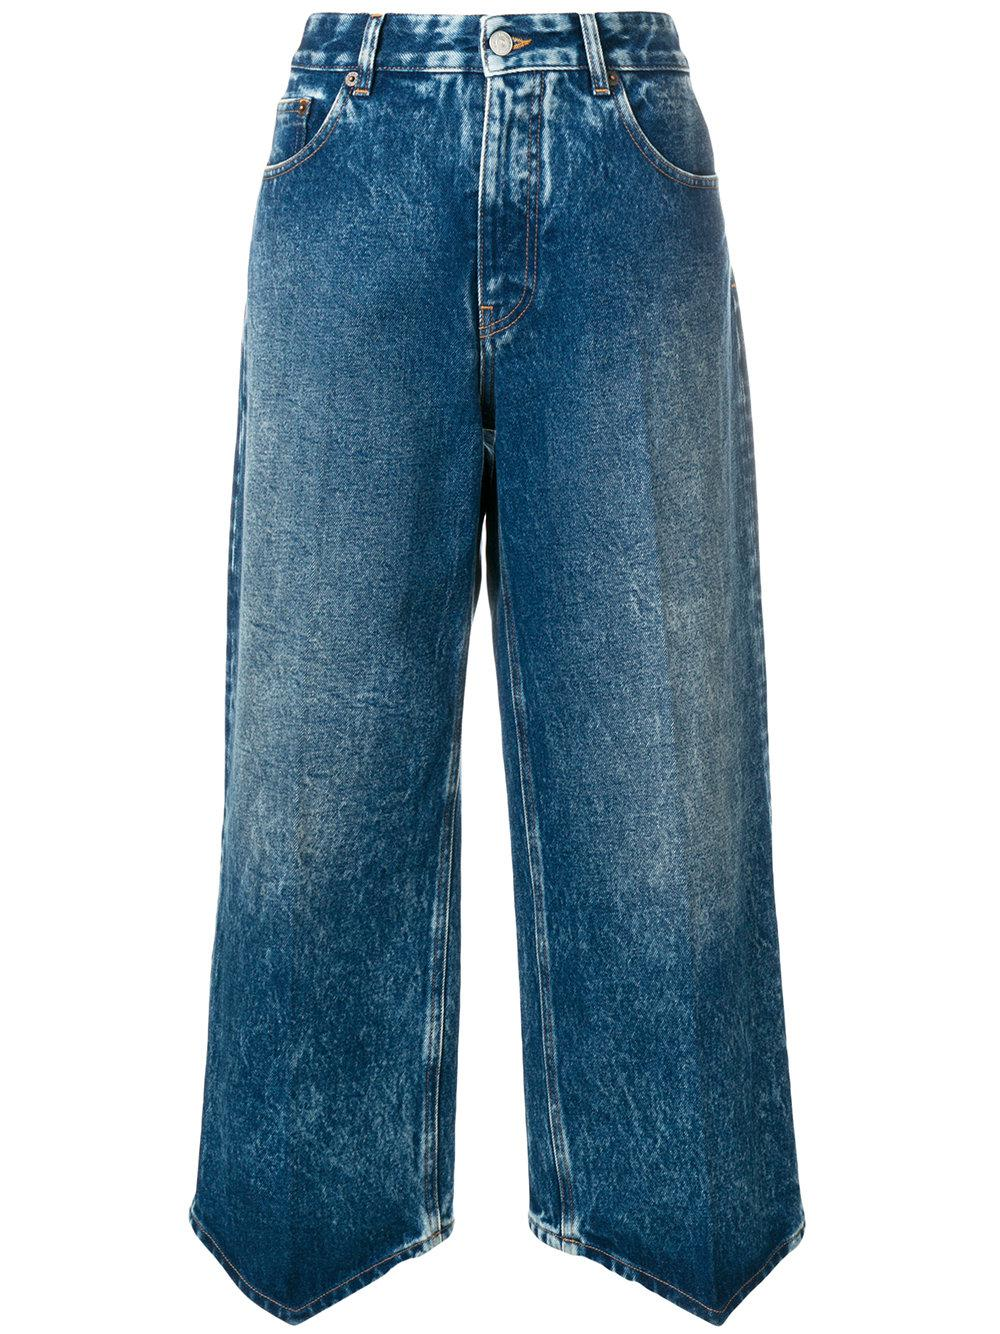 high-rise cropped jeans - Blue Maison Martin Margiela